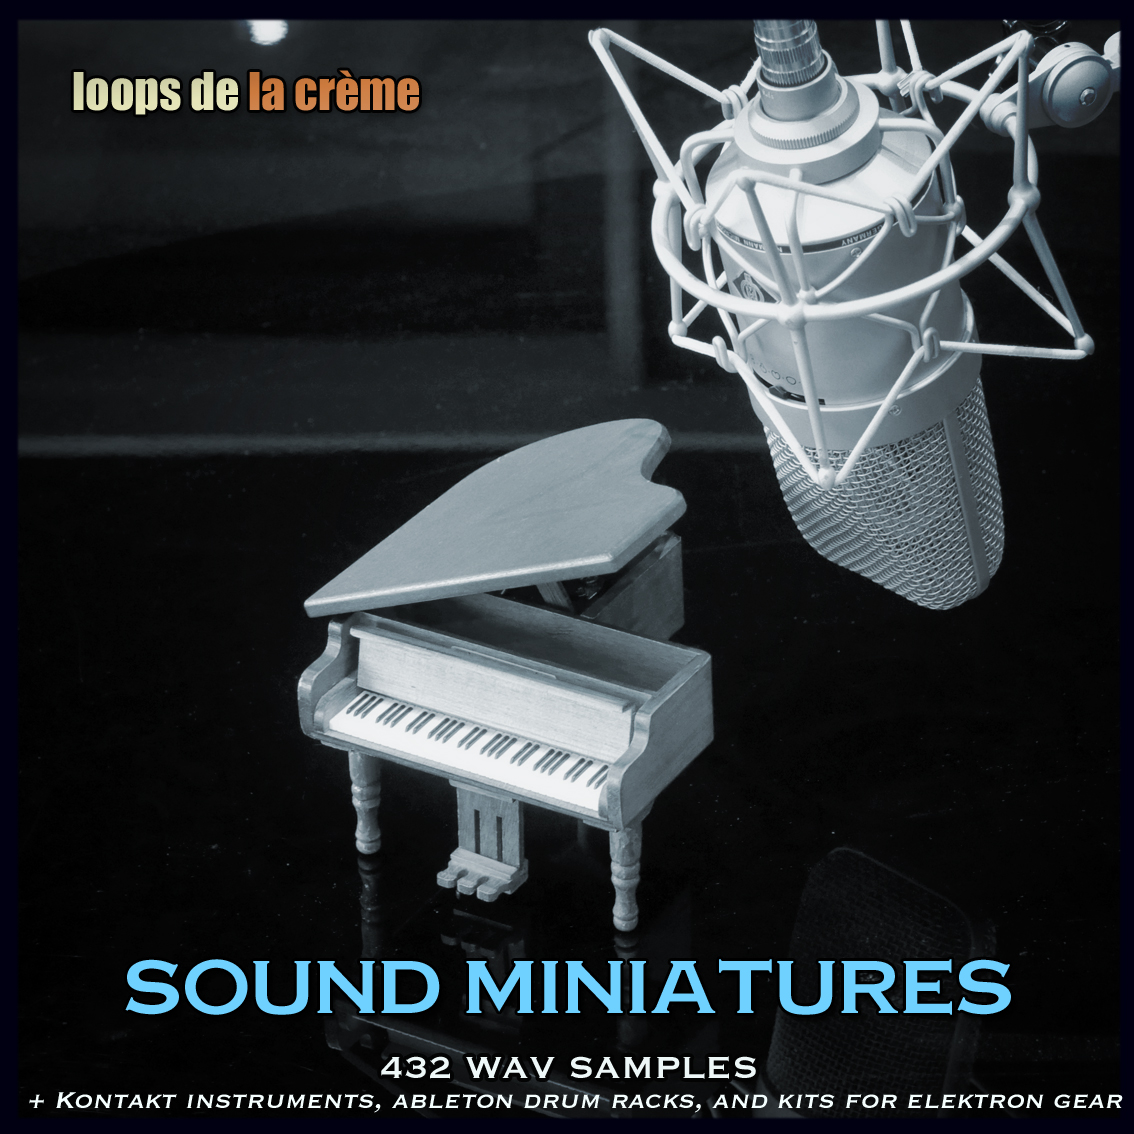 SOUND-MINIATURES_1A_UPDATED.jpg